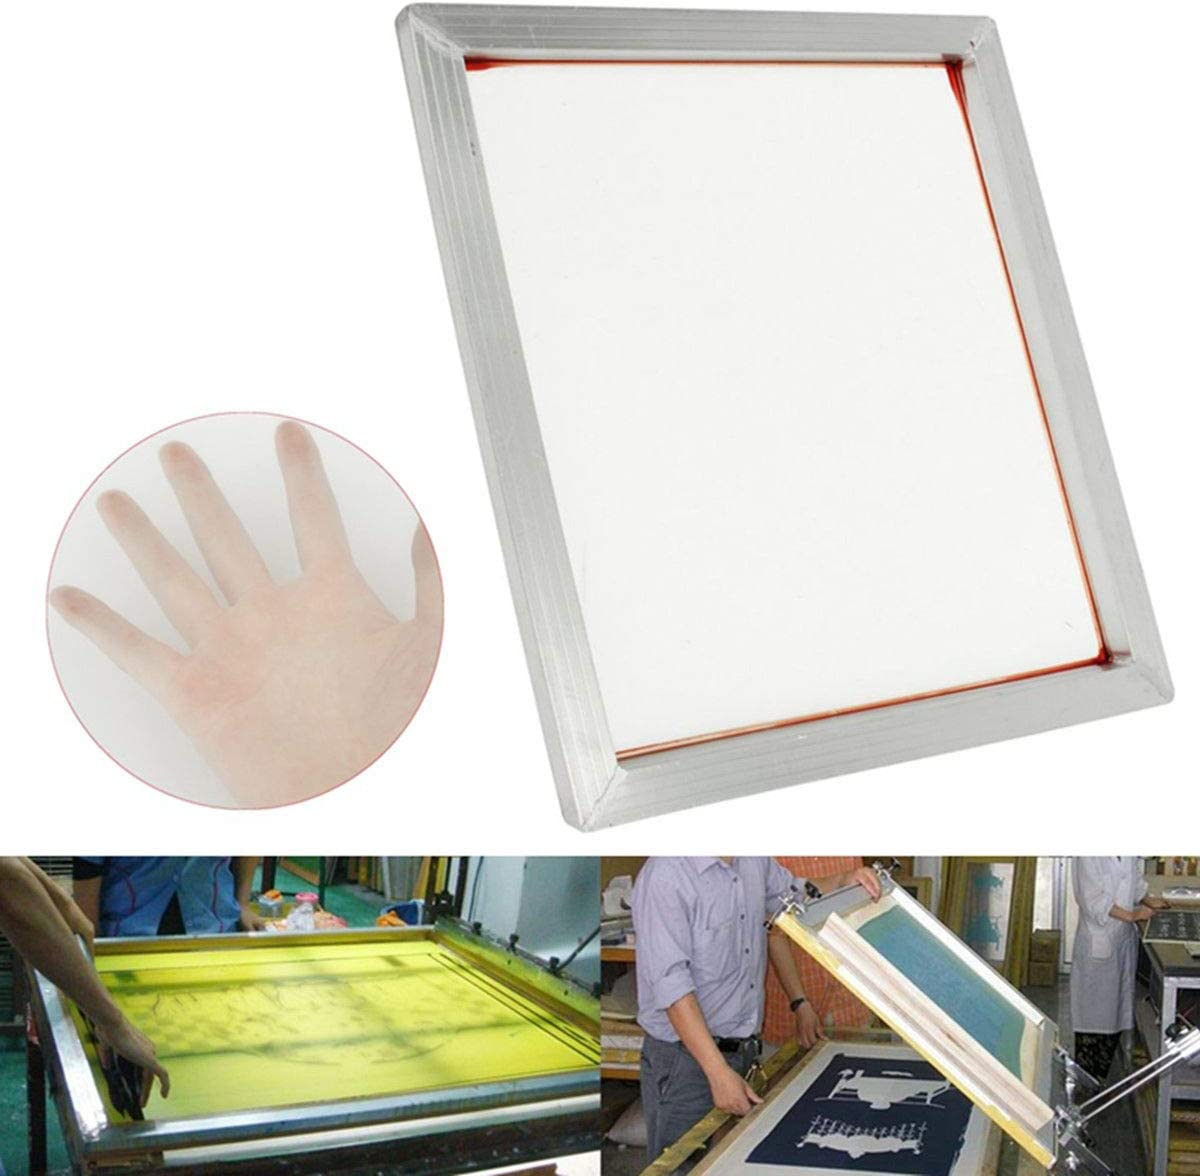 230 100T Yellow Mesh INTBUYING 6Pcs 15x17 Screen Printing Frame Mesh Pre-Stretched Aluminum Frame